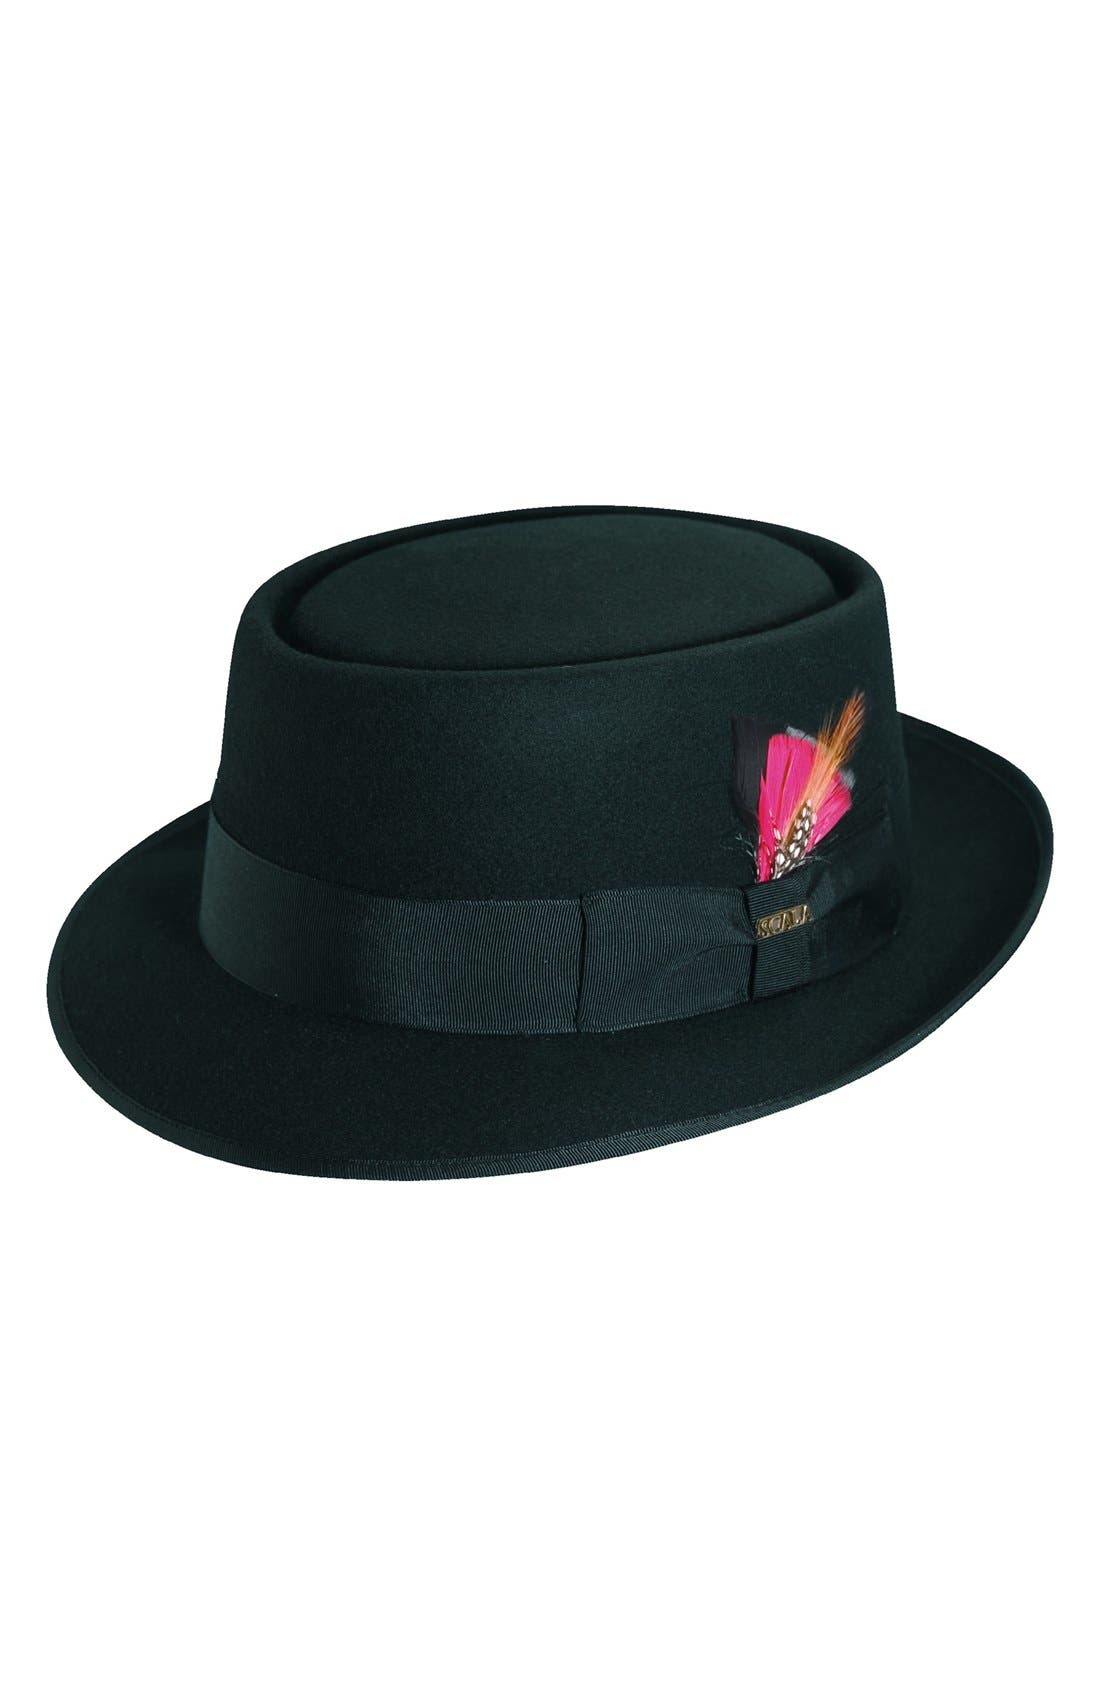 Scala Wool Felt Porkpie Hat